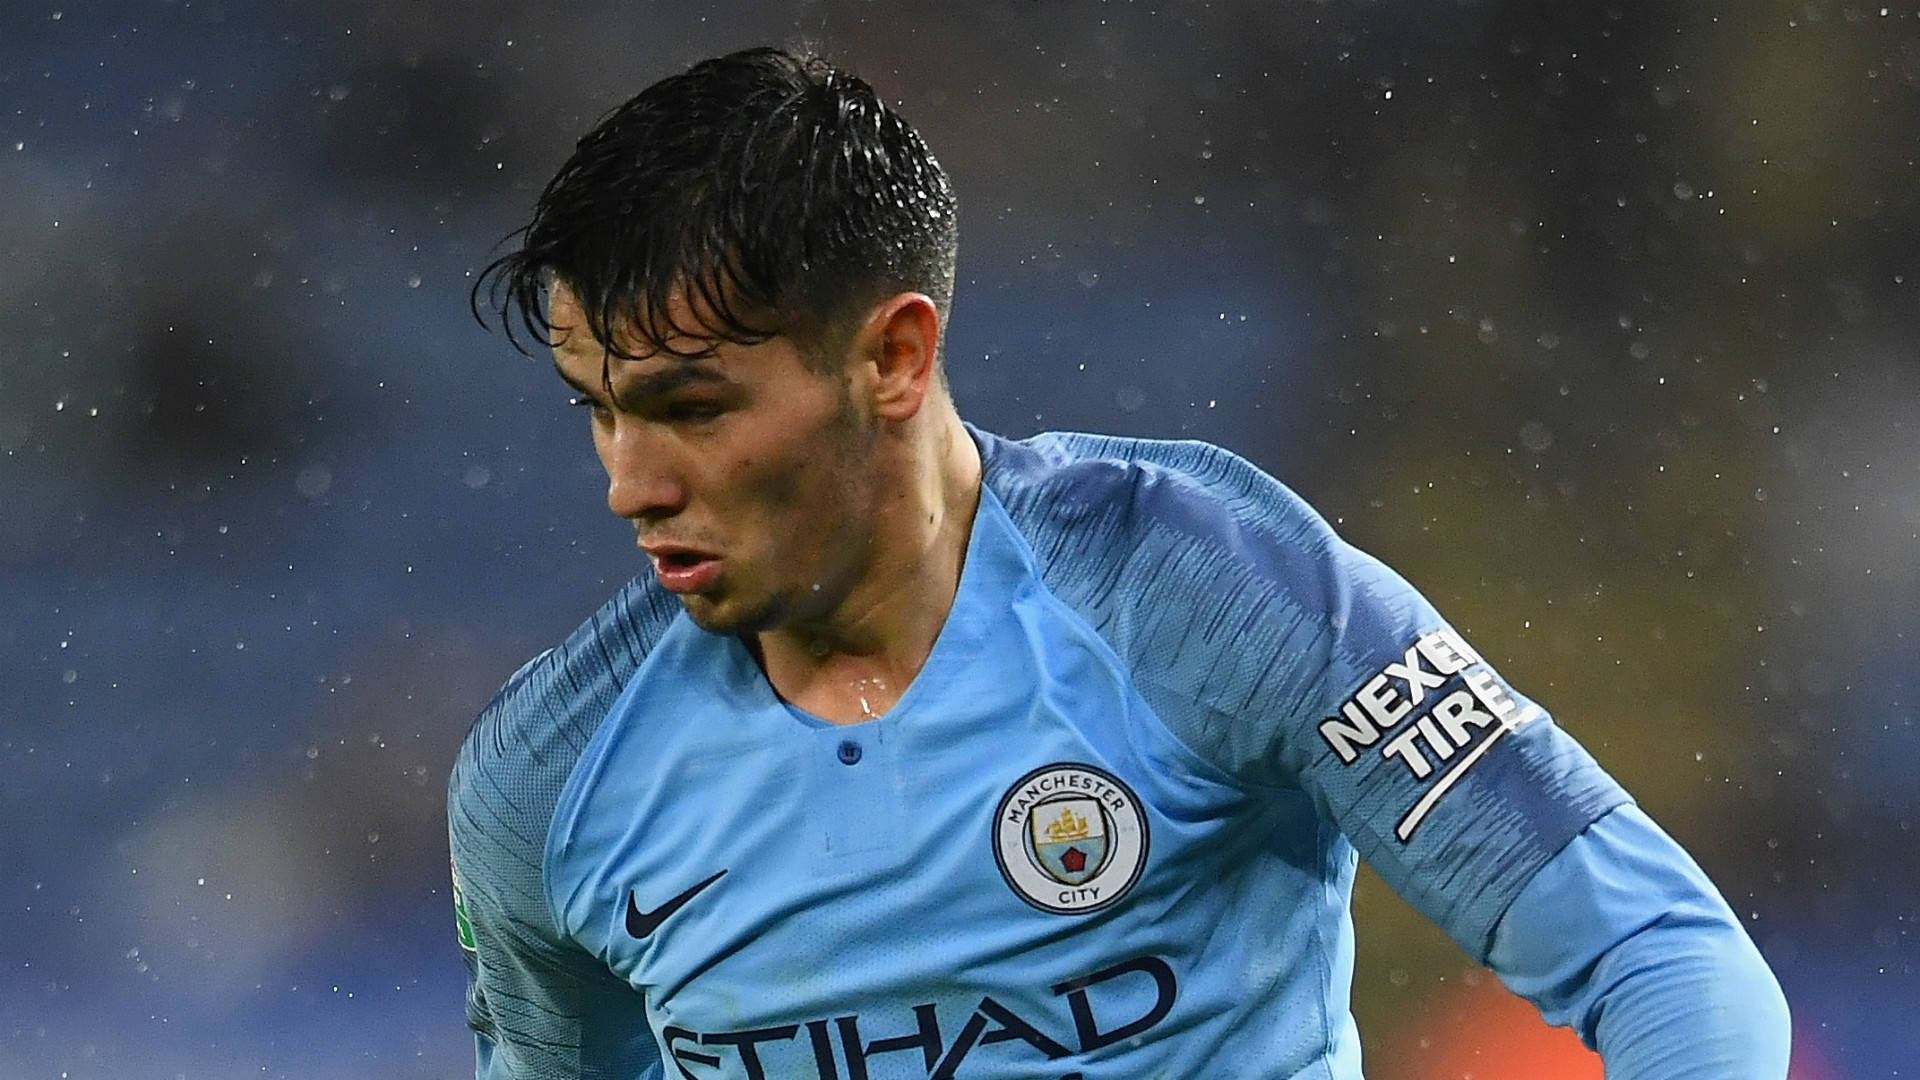 Real Madrid confirm Brahim Diaz signing